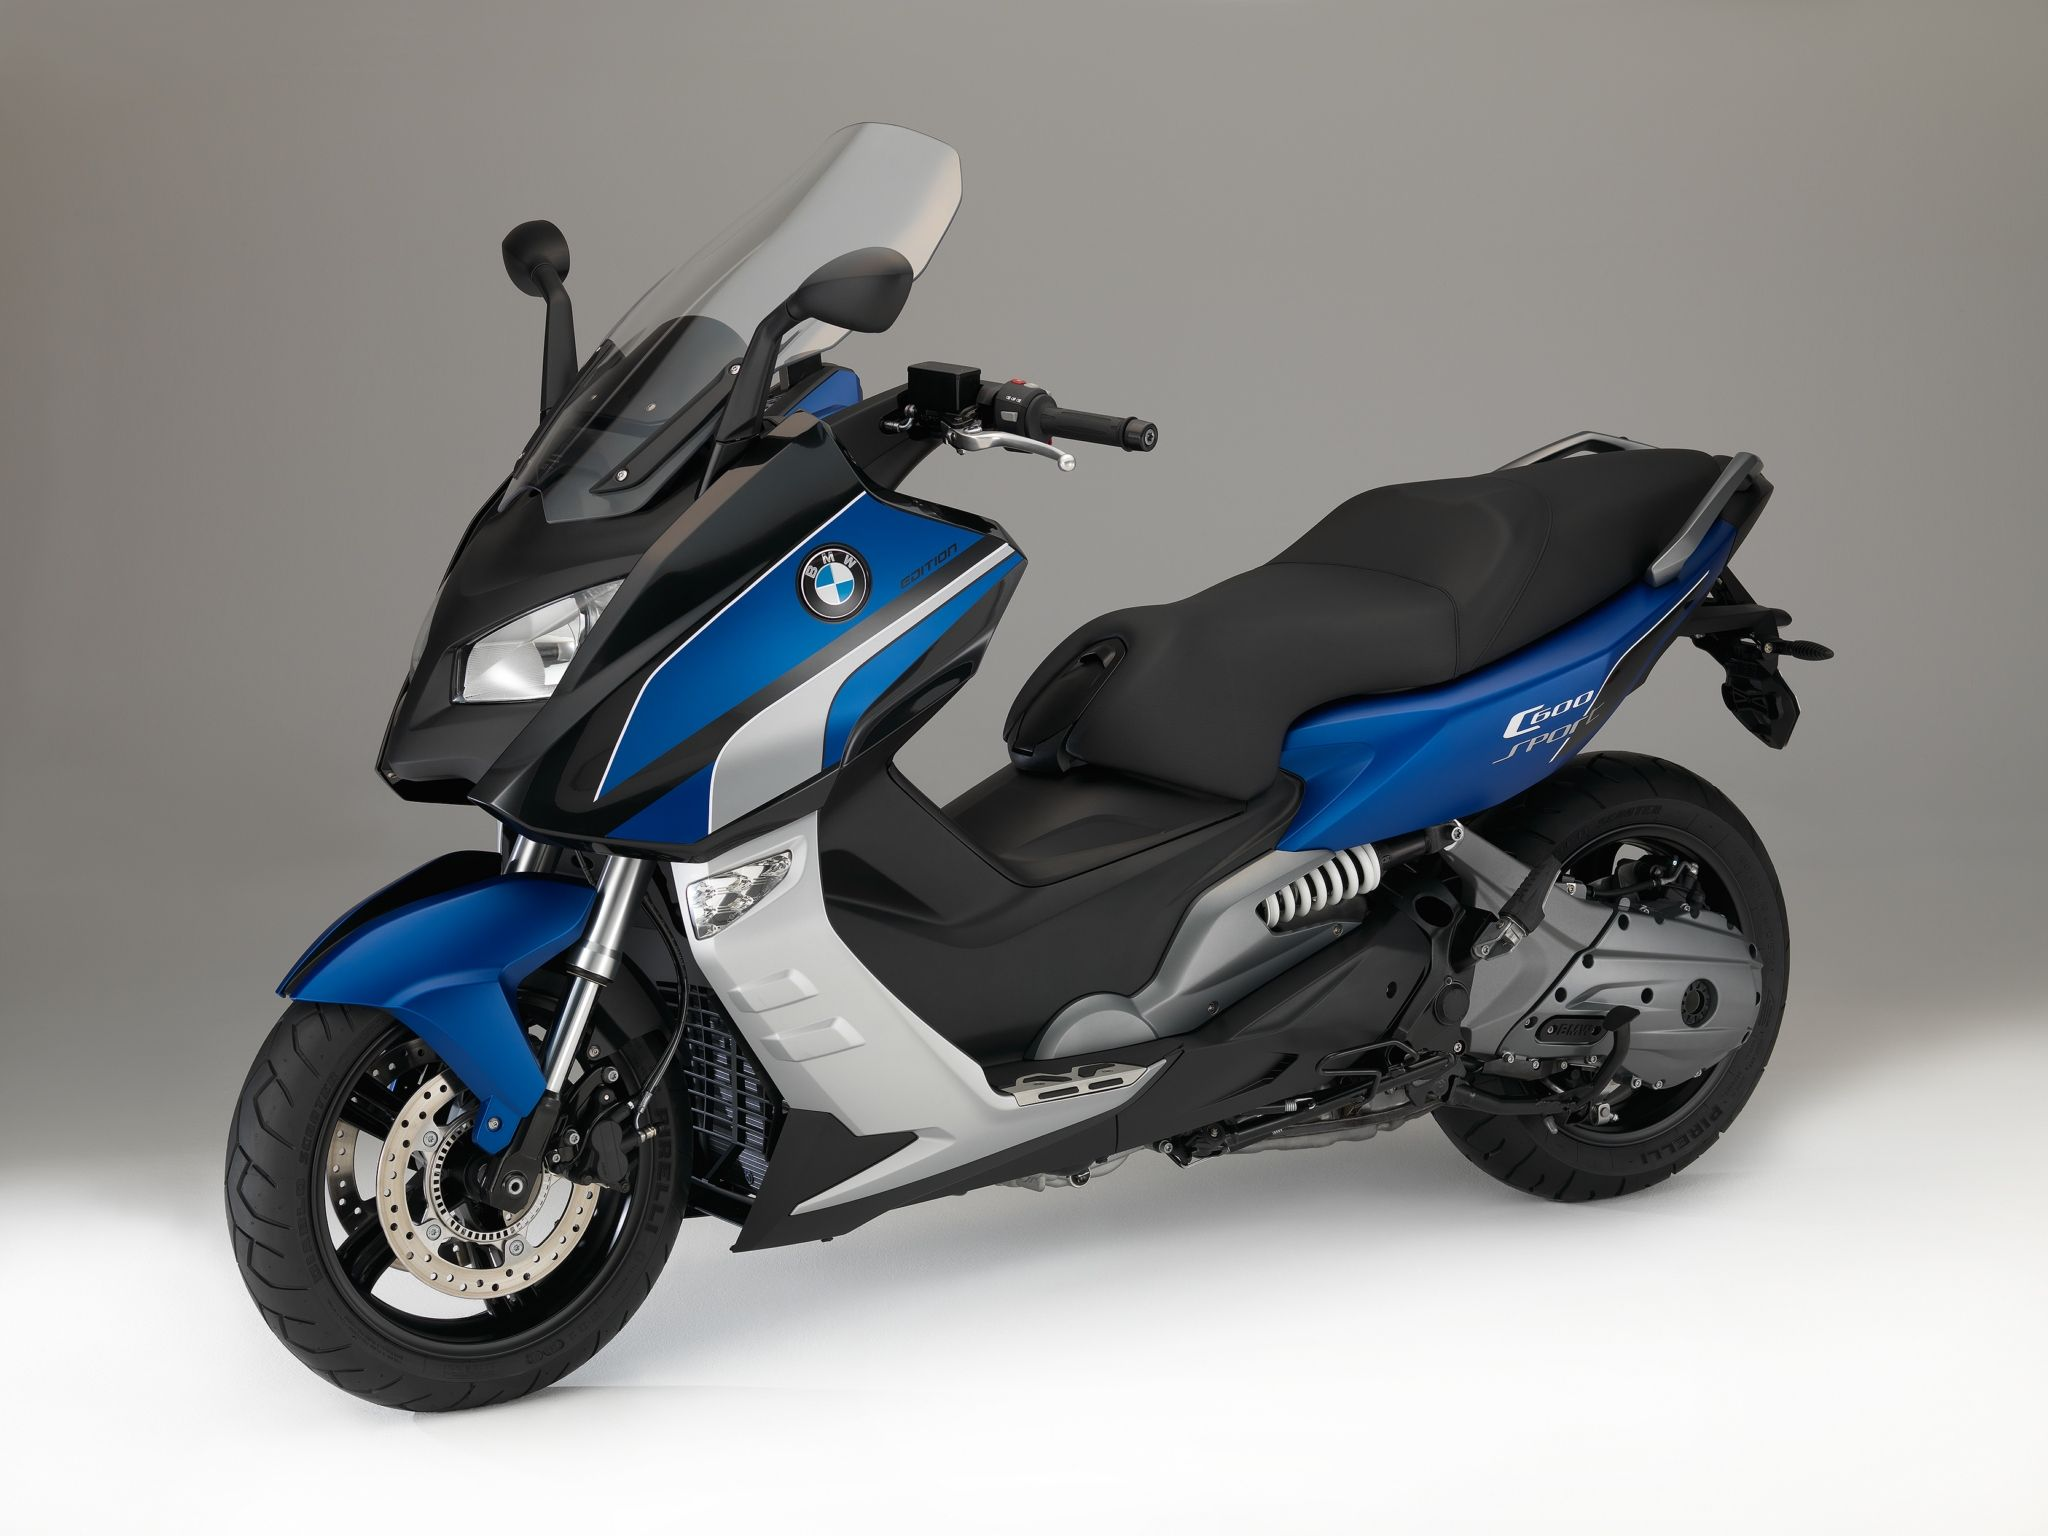 2015-bmw-c 600-sport-and-c 650 gt-special-edition-maxi-scooters